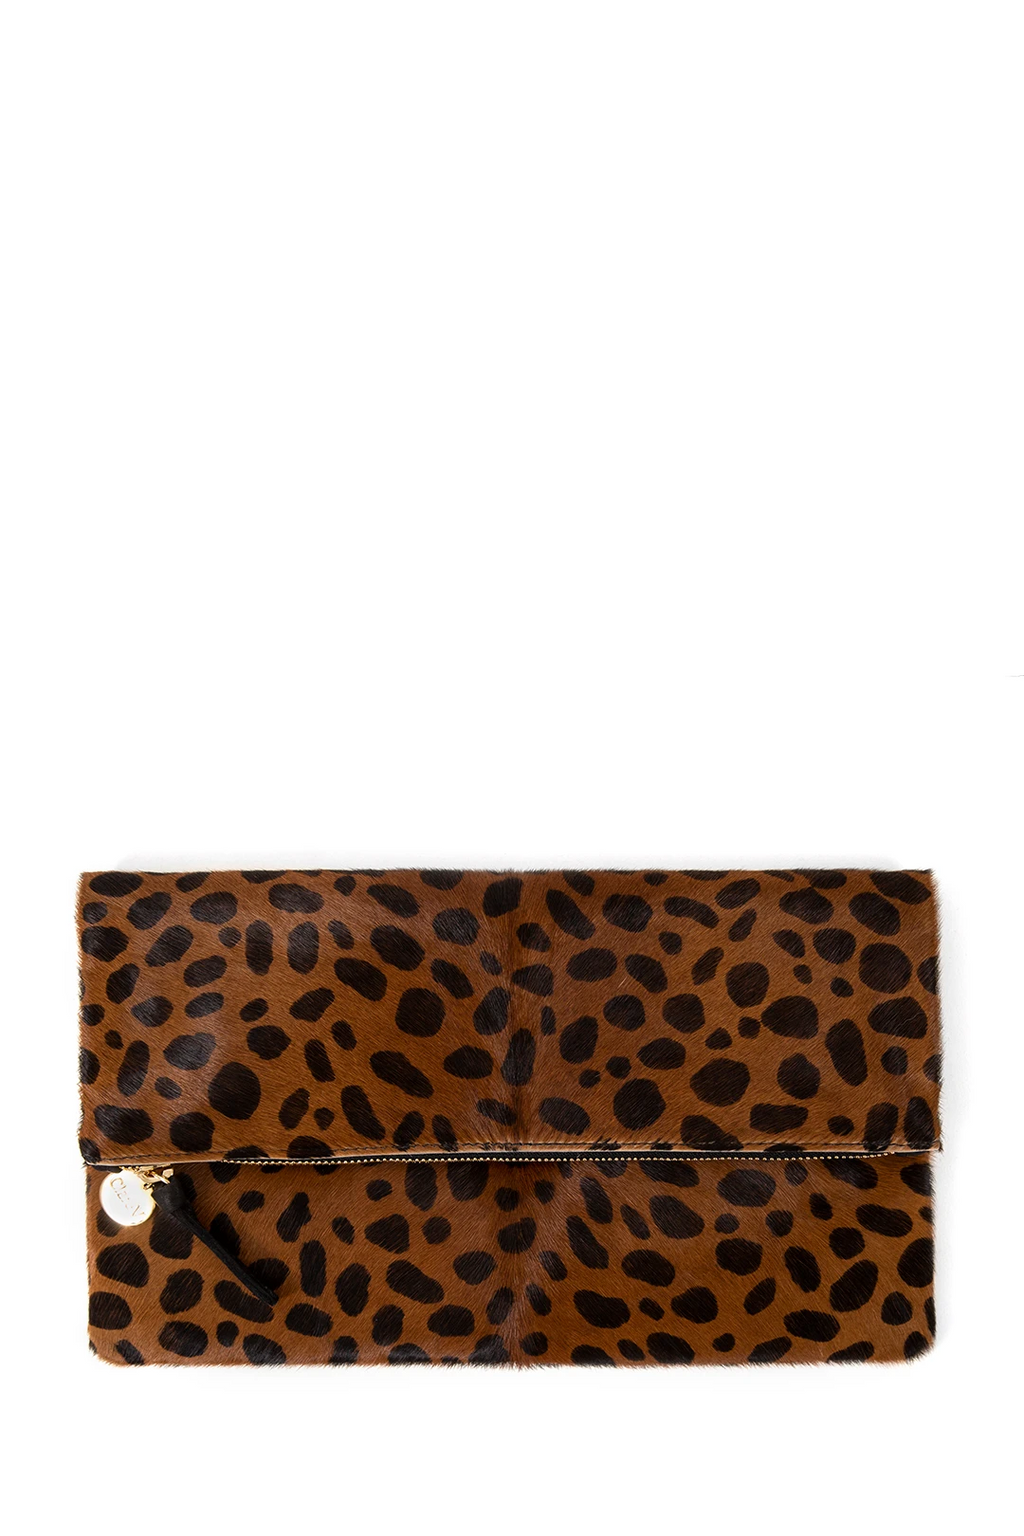 clare v. foldover clutch leopard hair